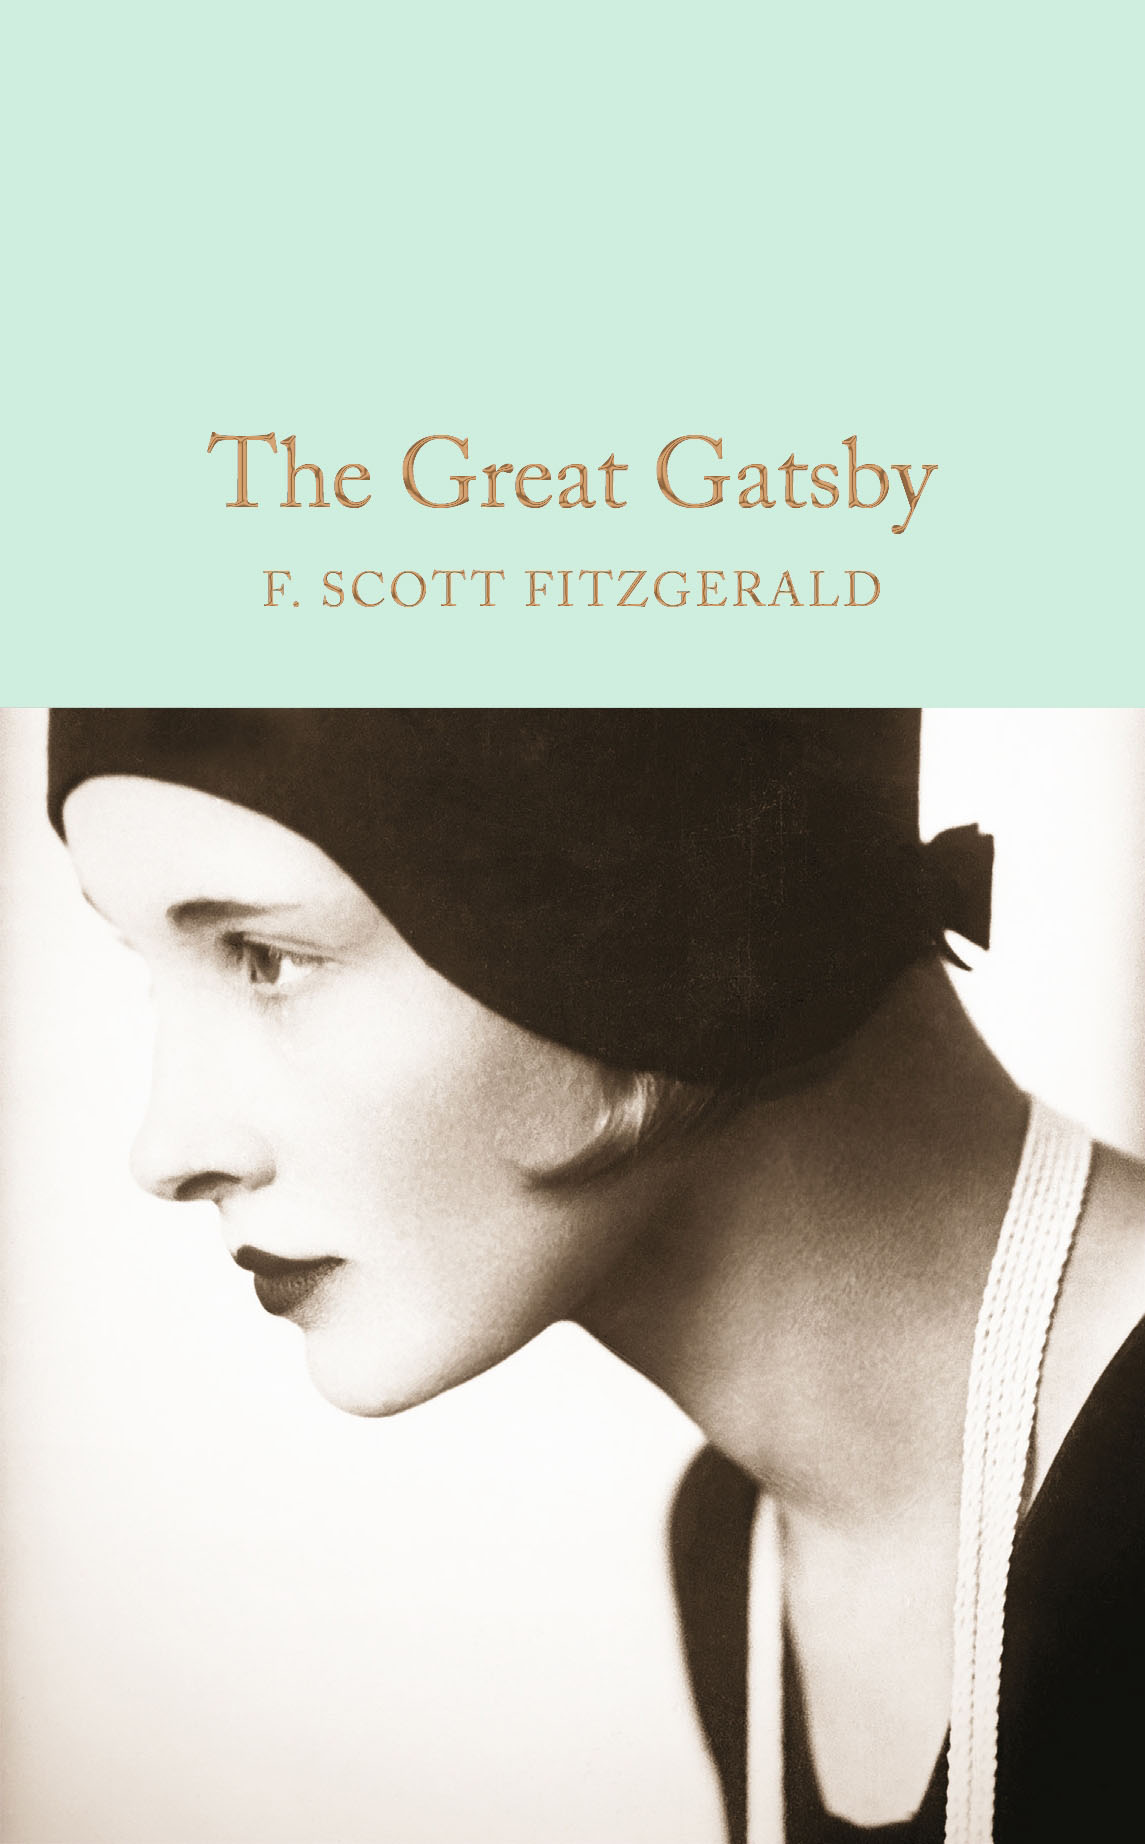 a comparison of compassion and faults in scot fitzgeralds the great gatsby and william shakespeares